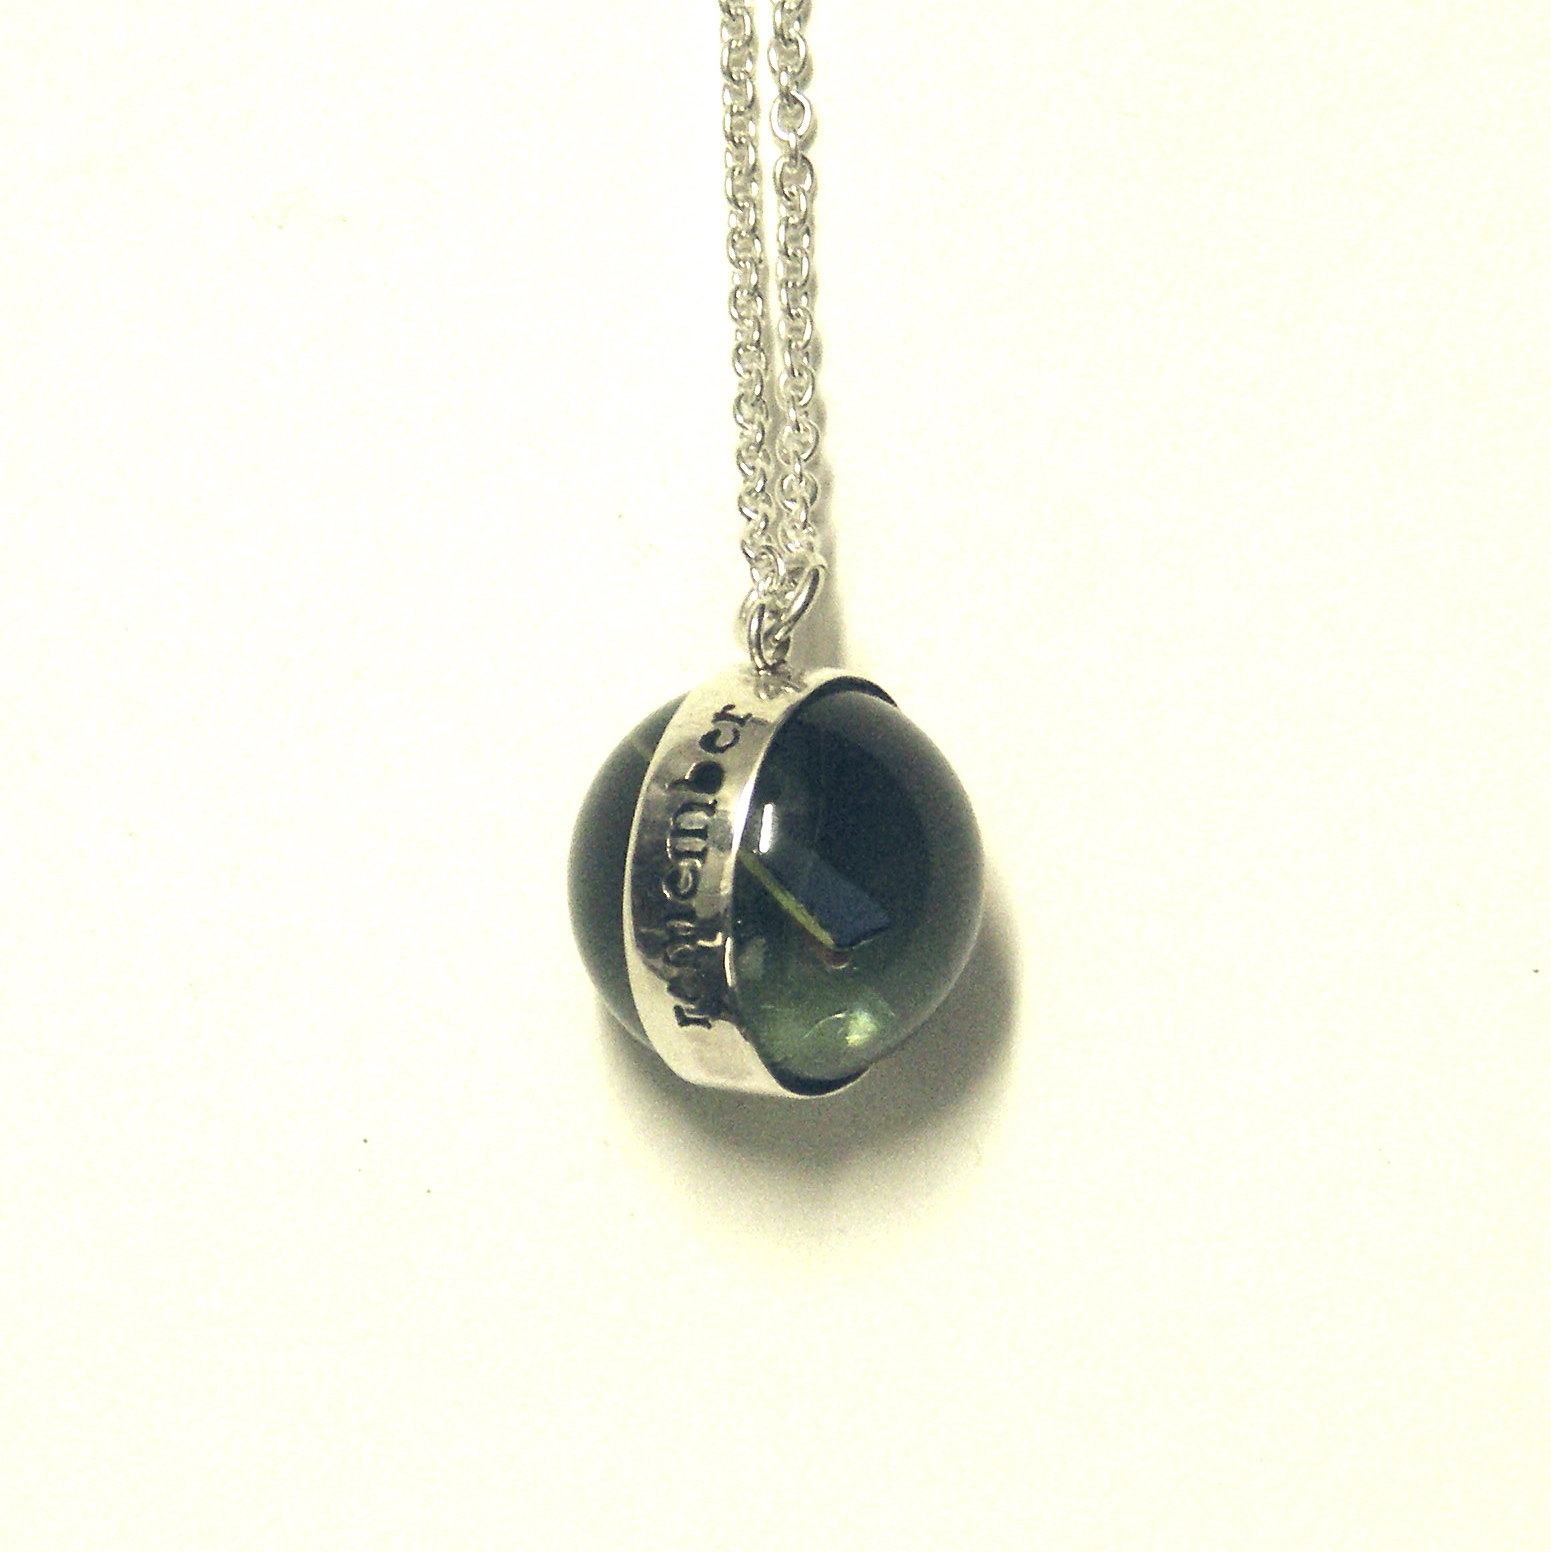 RMN-Remember marble necklace